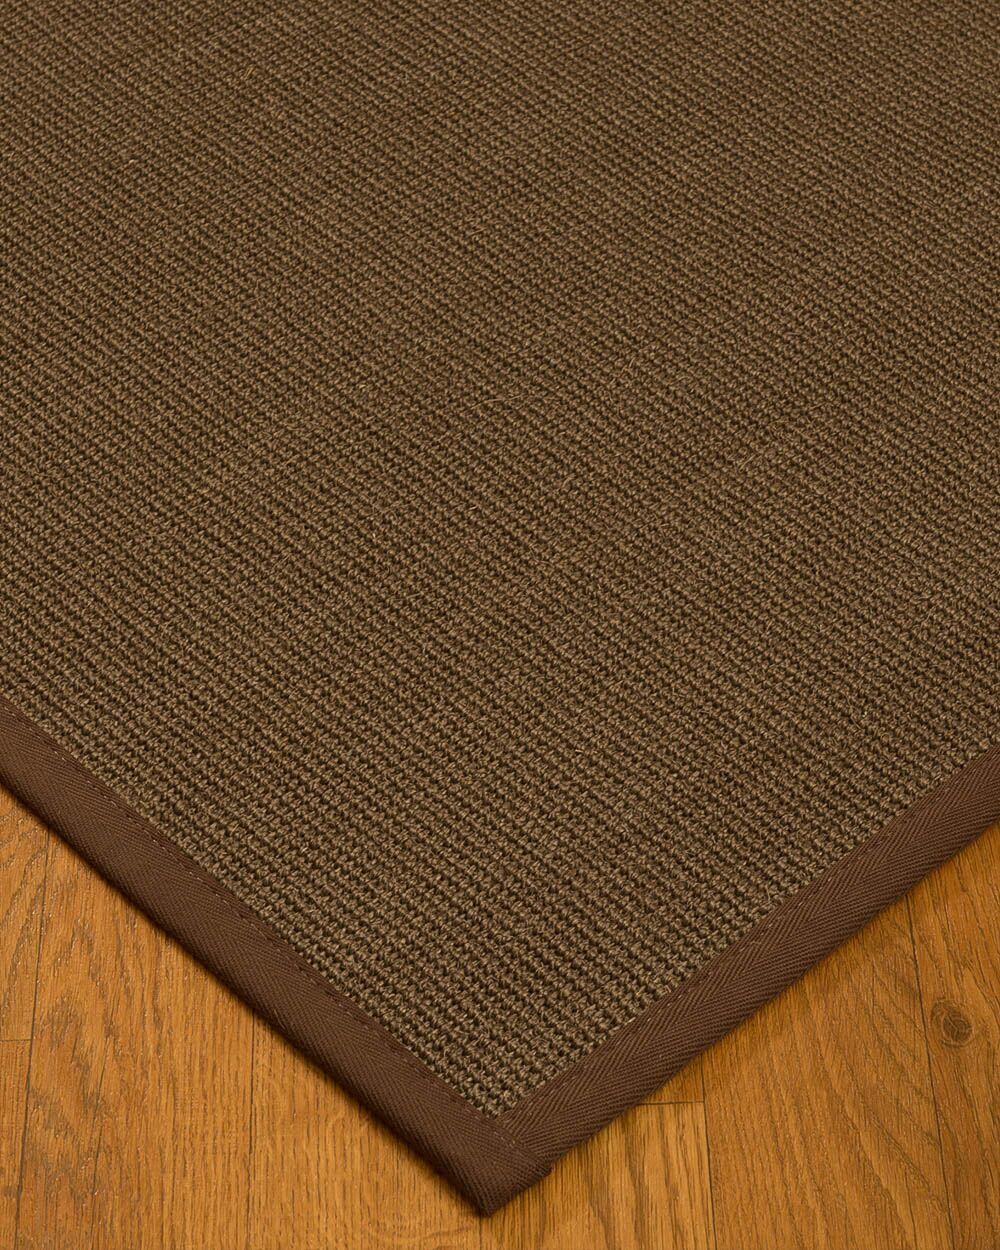 Kerner Border Hand-Woven Brown Area Rug Rug Size: Rectangle 5' x 8', Rug Pad Included: Yes